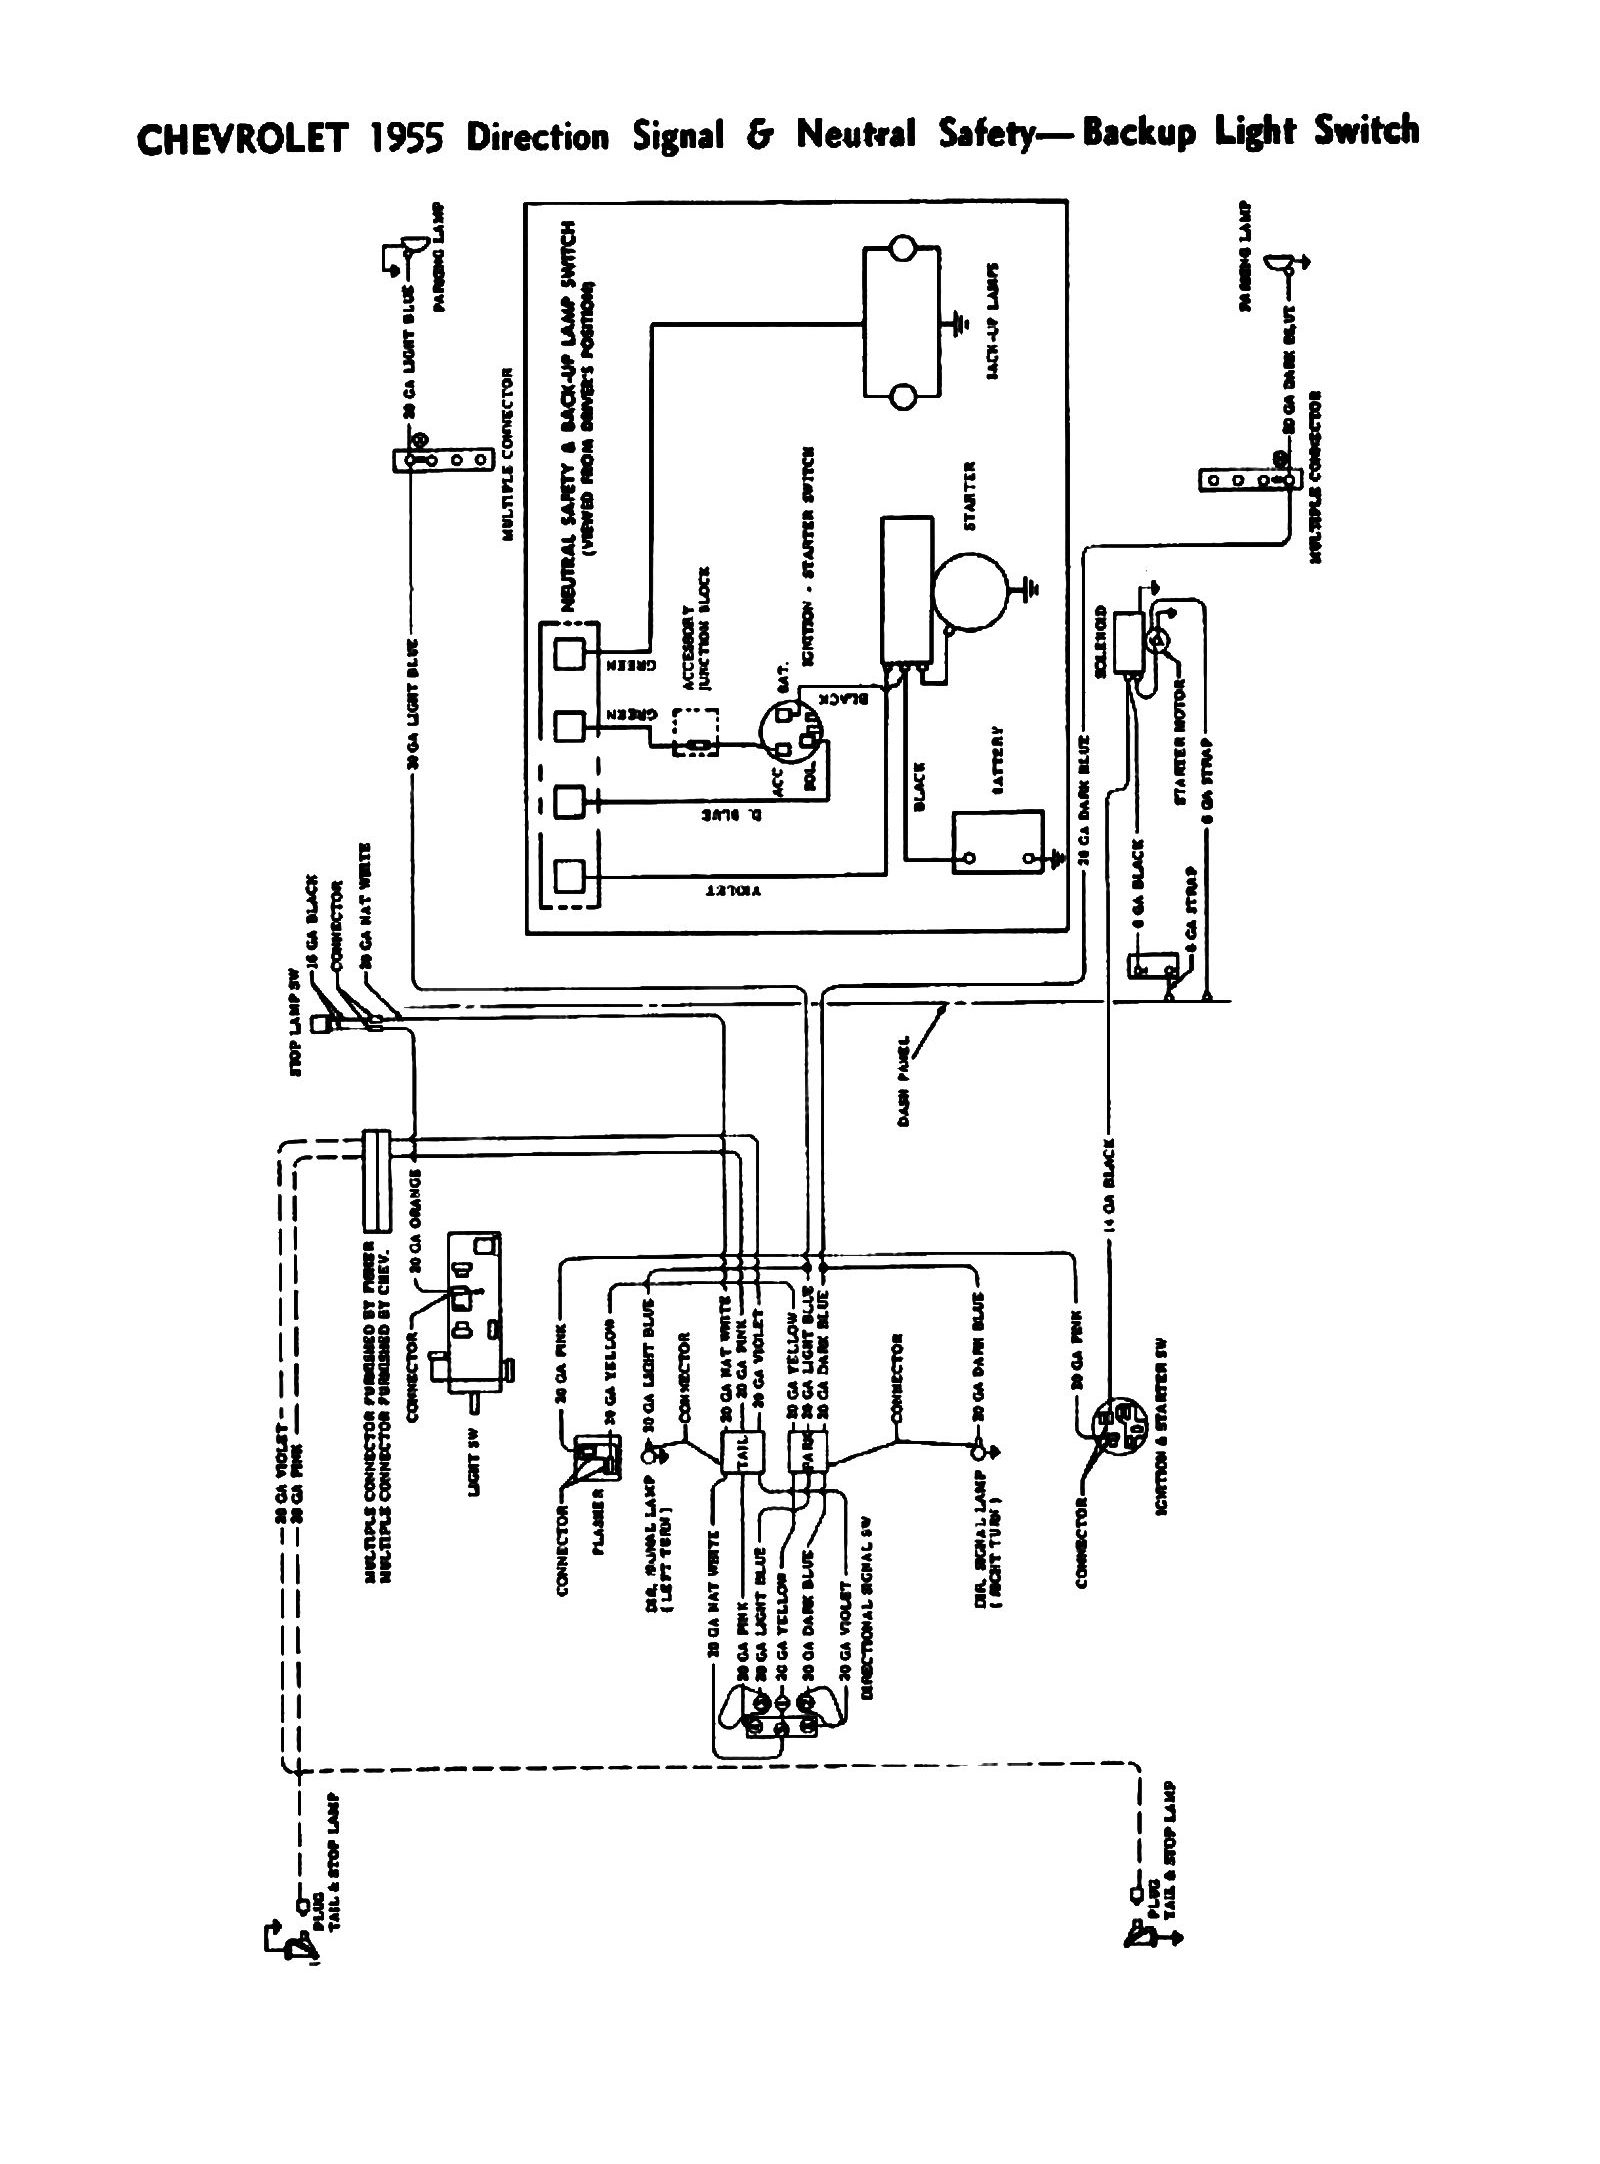 hight resolution of chevrolet ignition wiring diagram wiring diagram third level chevrolet 1969 ignition wiring diagram 1954 chevrolet ignition